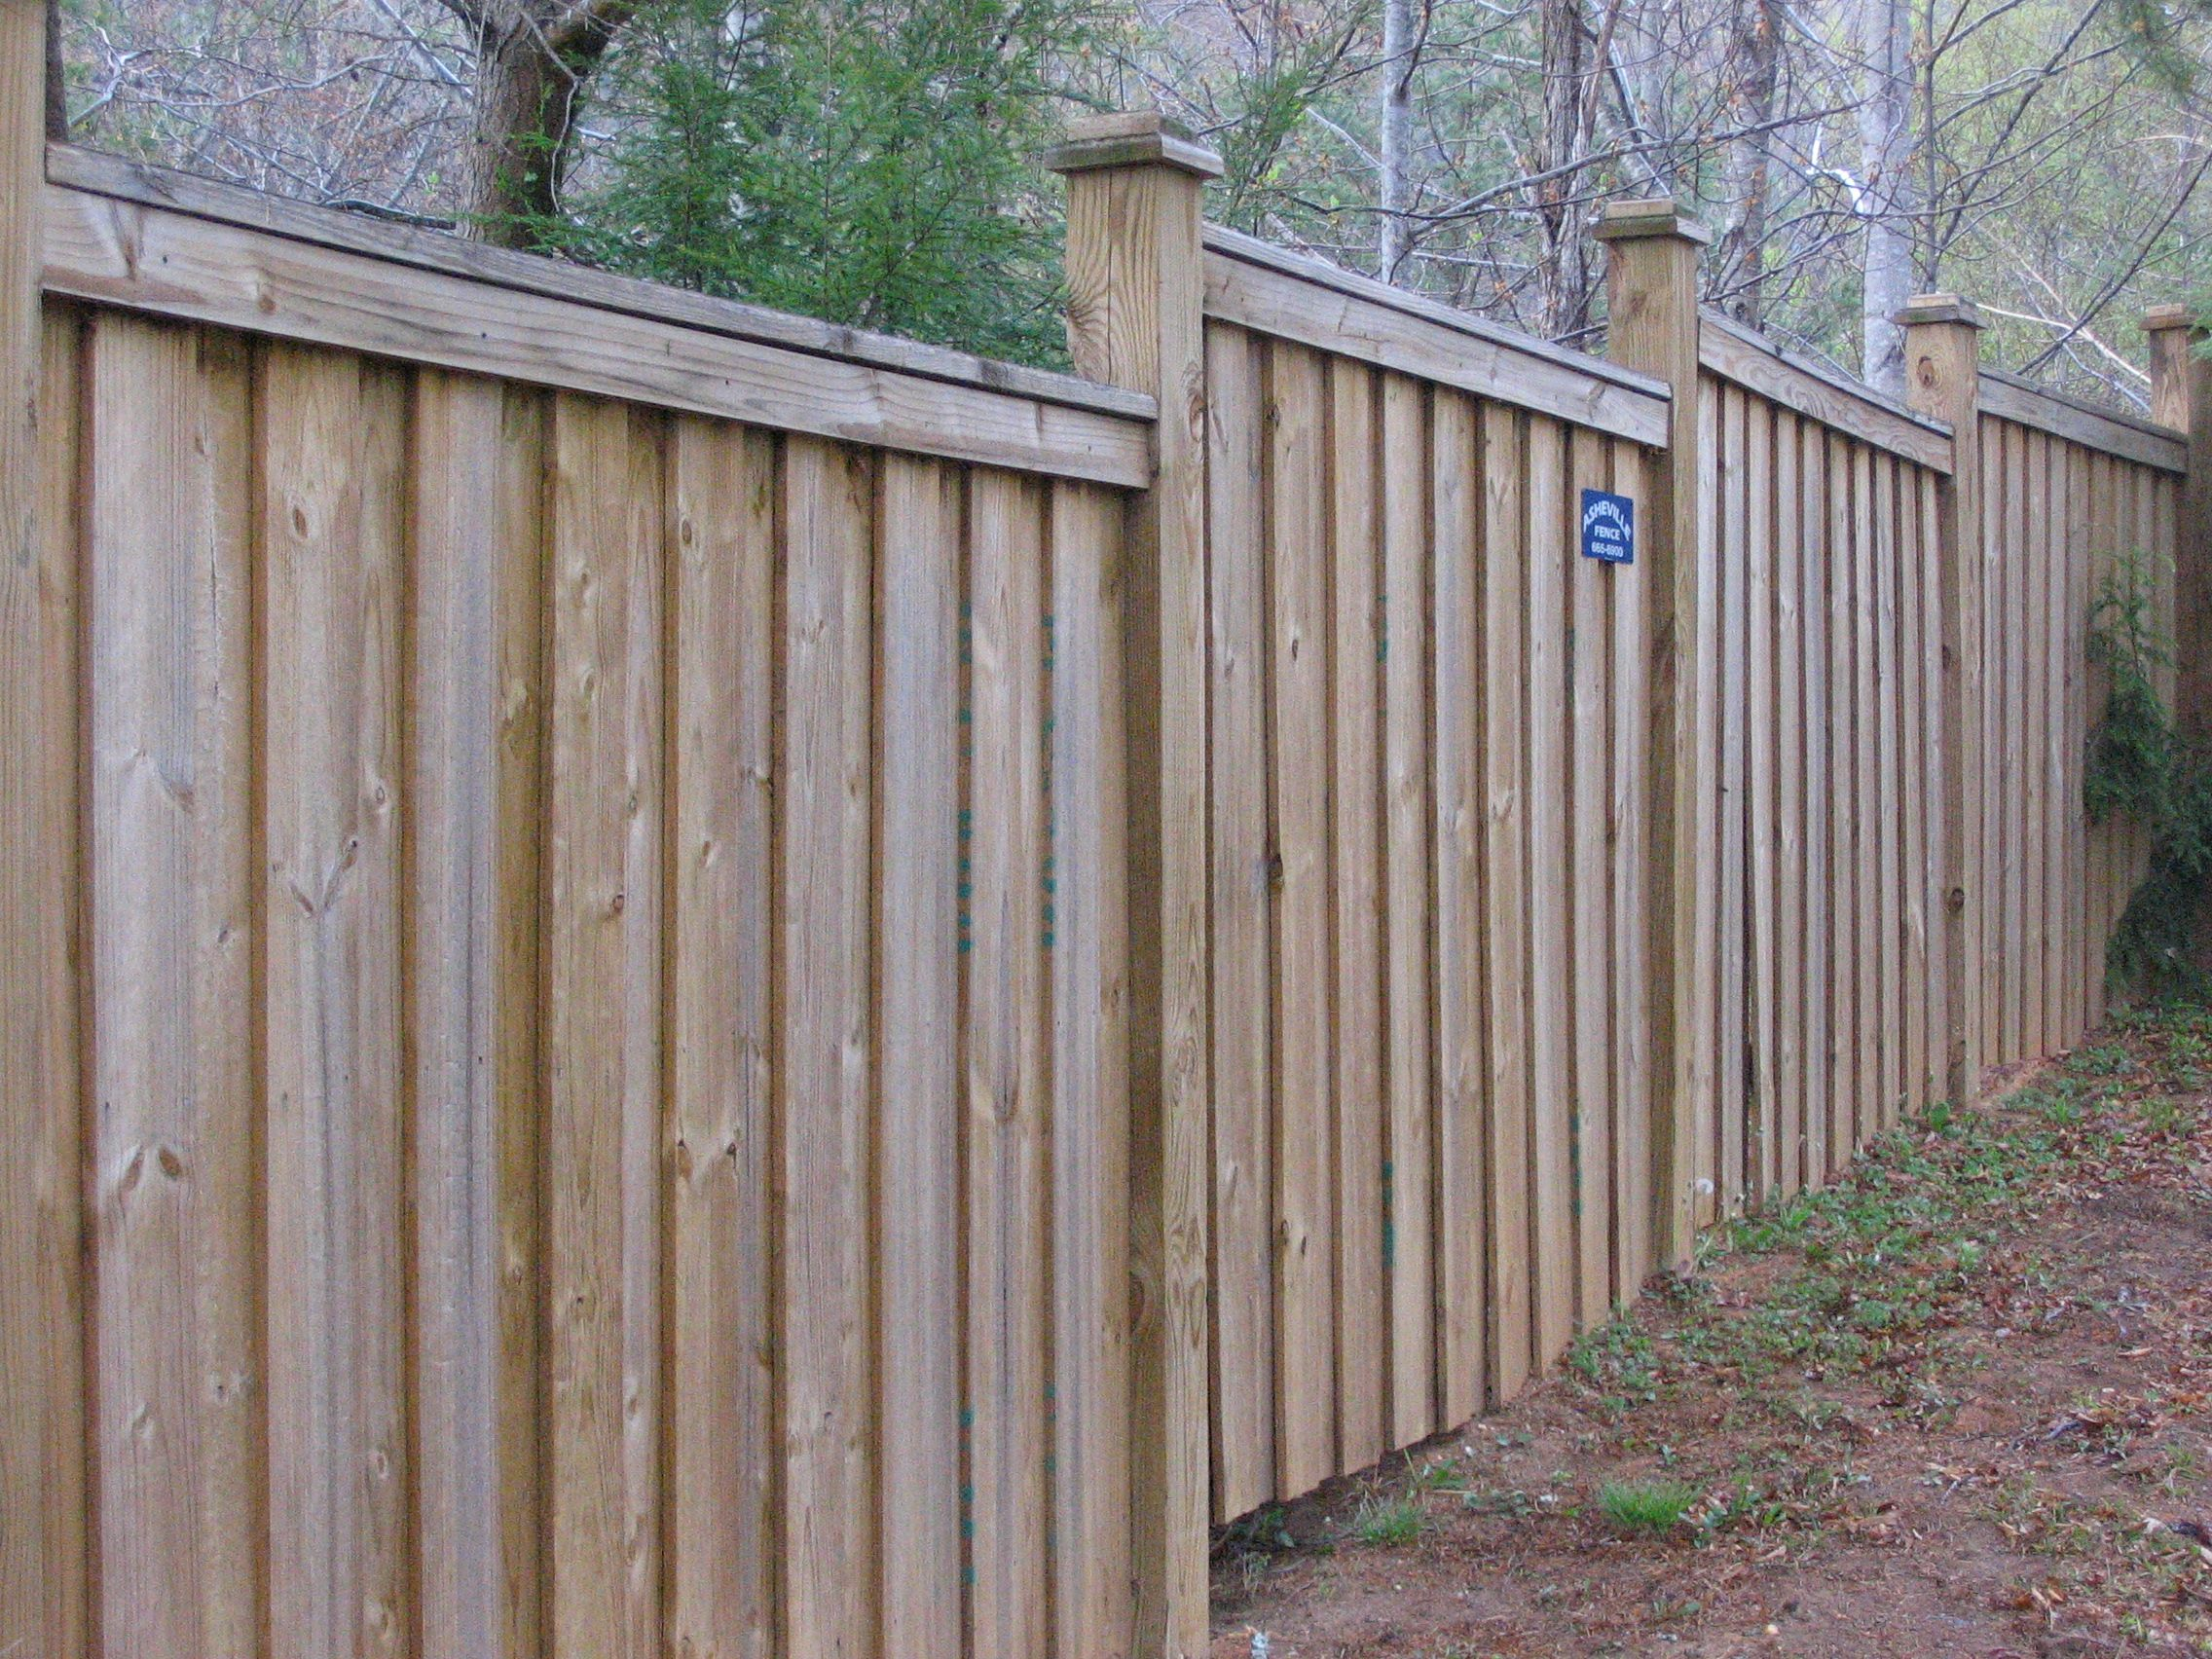 Wood Privacy Fence Board on Board Vertical Louver Style with Top Cap